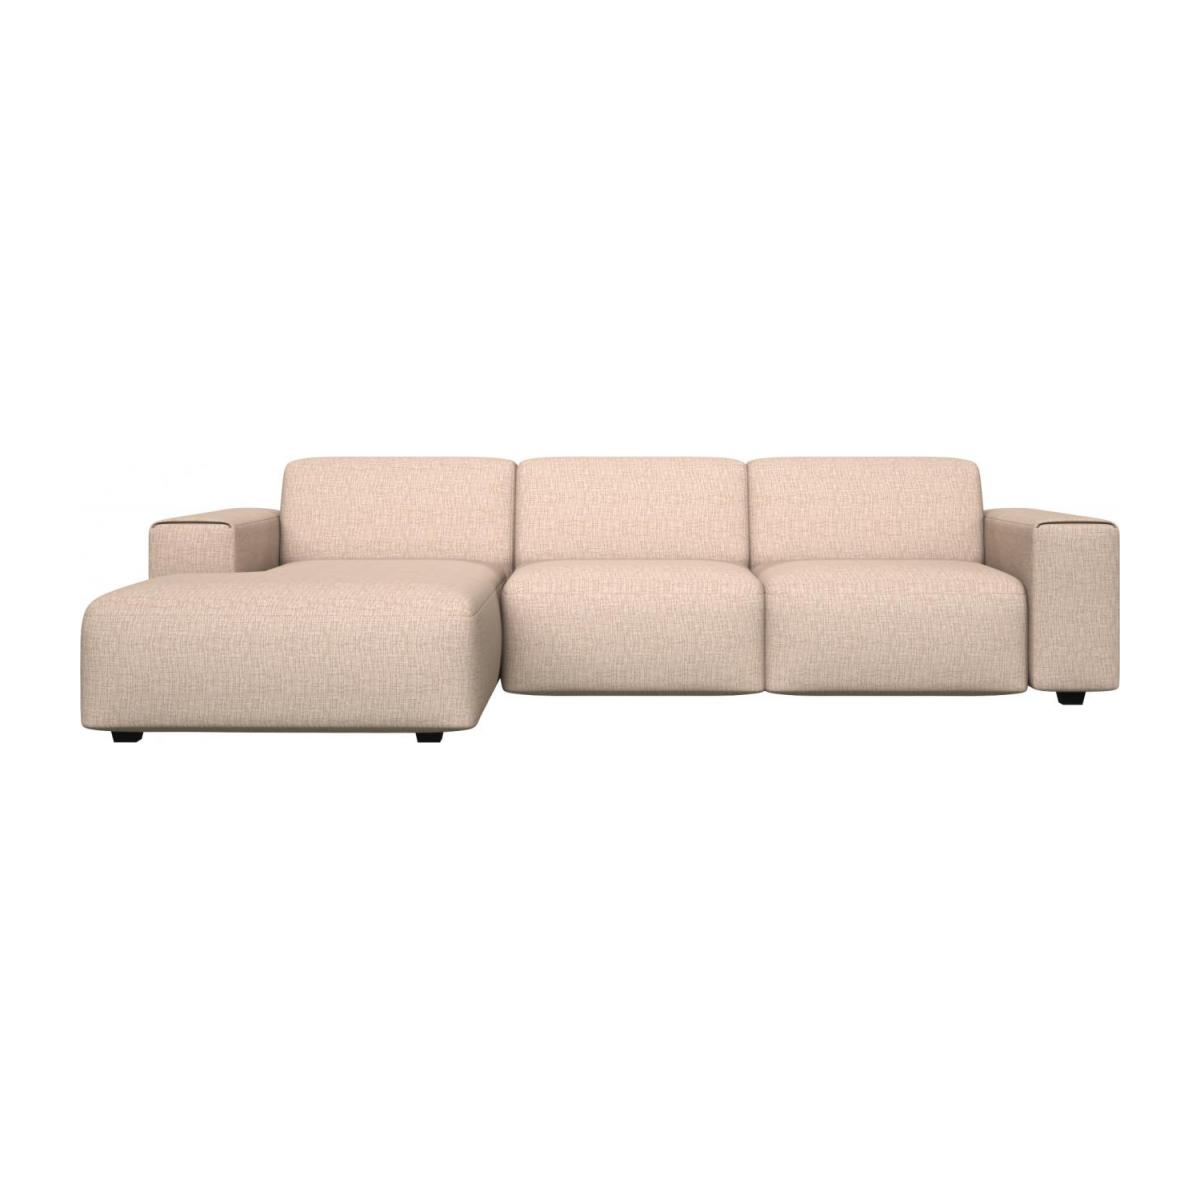 3 seater sofa with chaise longue on the left in Ancio fabric, nature n°2